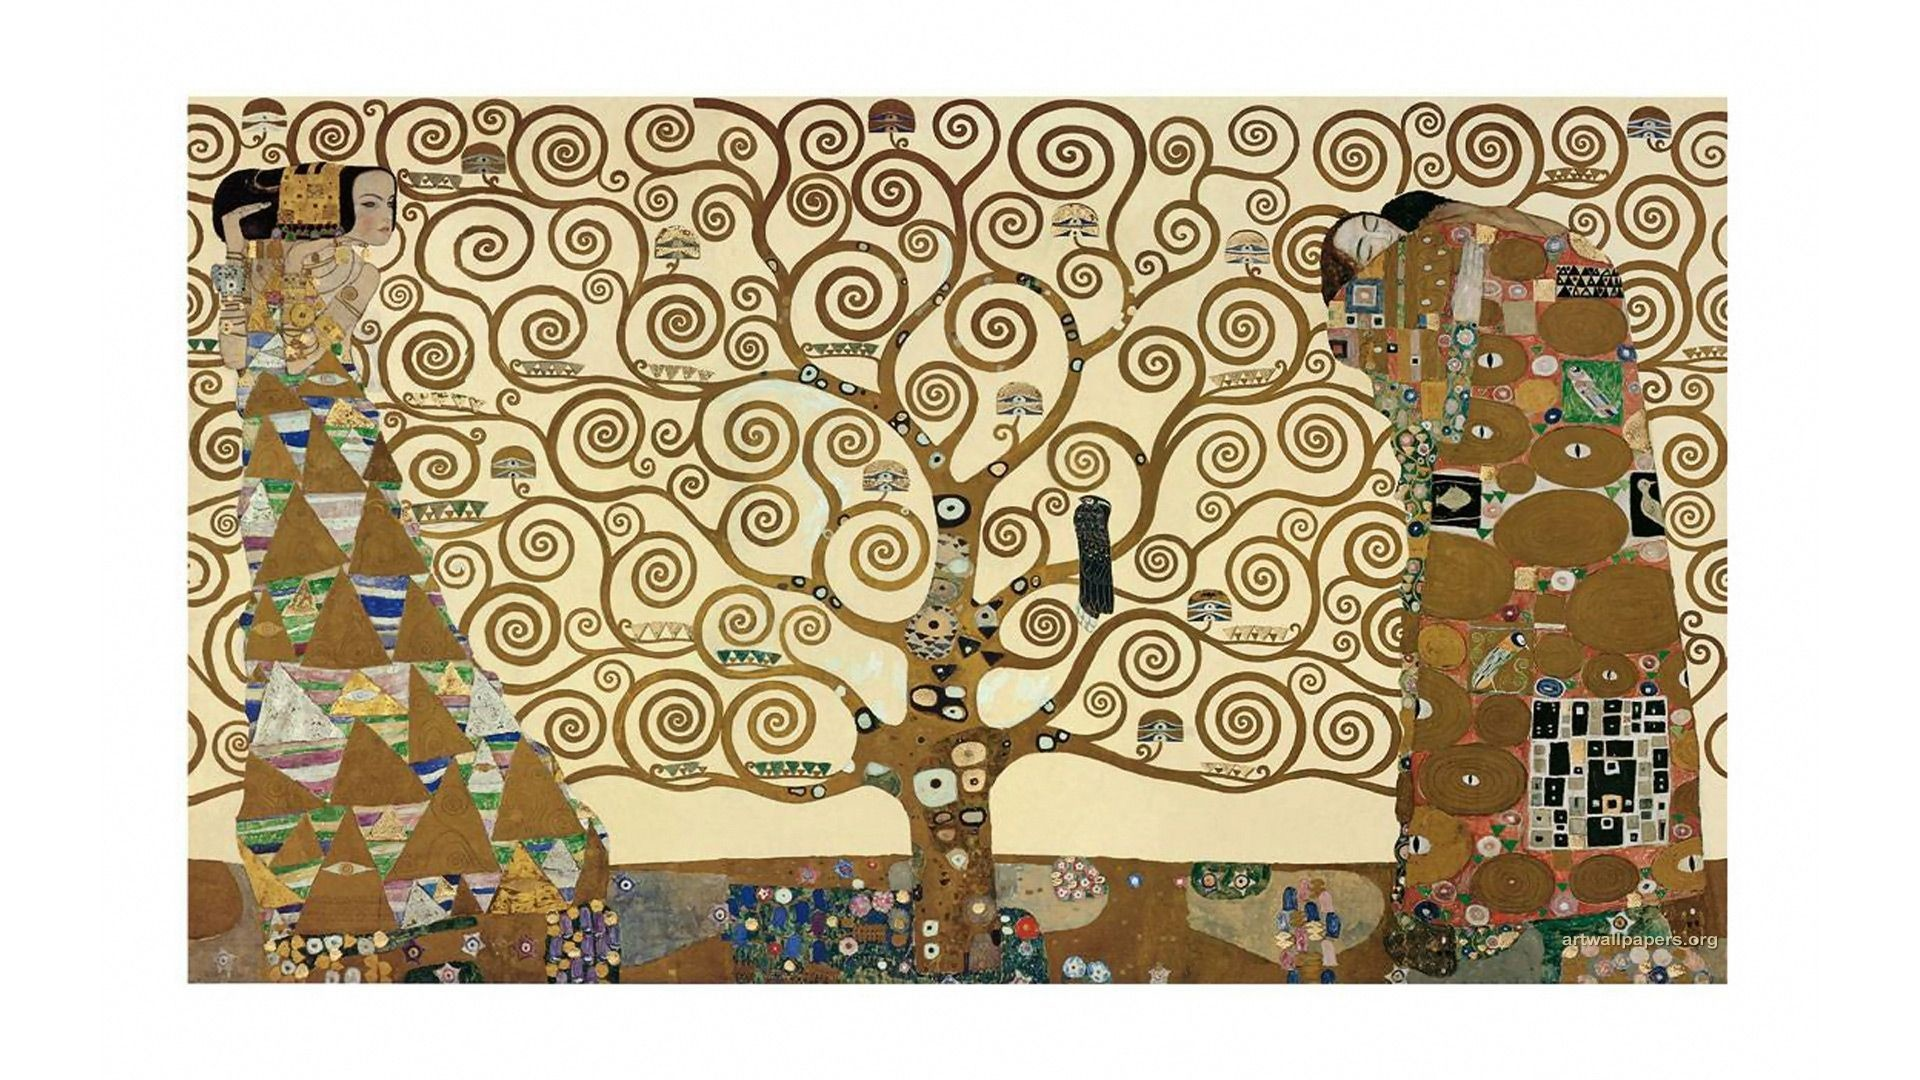 1920x1080 Klimt Gustav Klimt Wallpaper Image 1024×768 Klimt Wallpapers (52 Wallpapers)  | Adorable